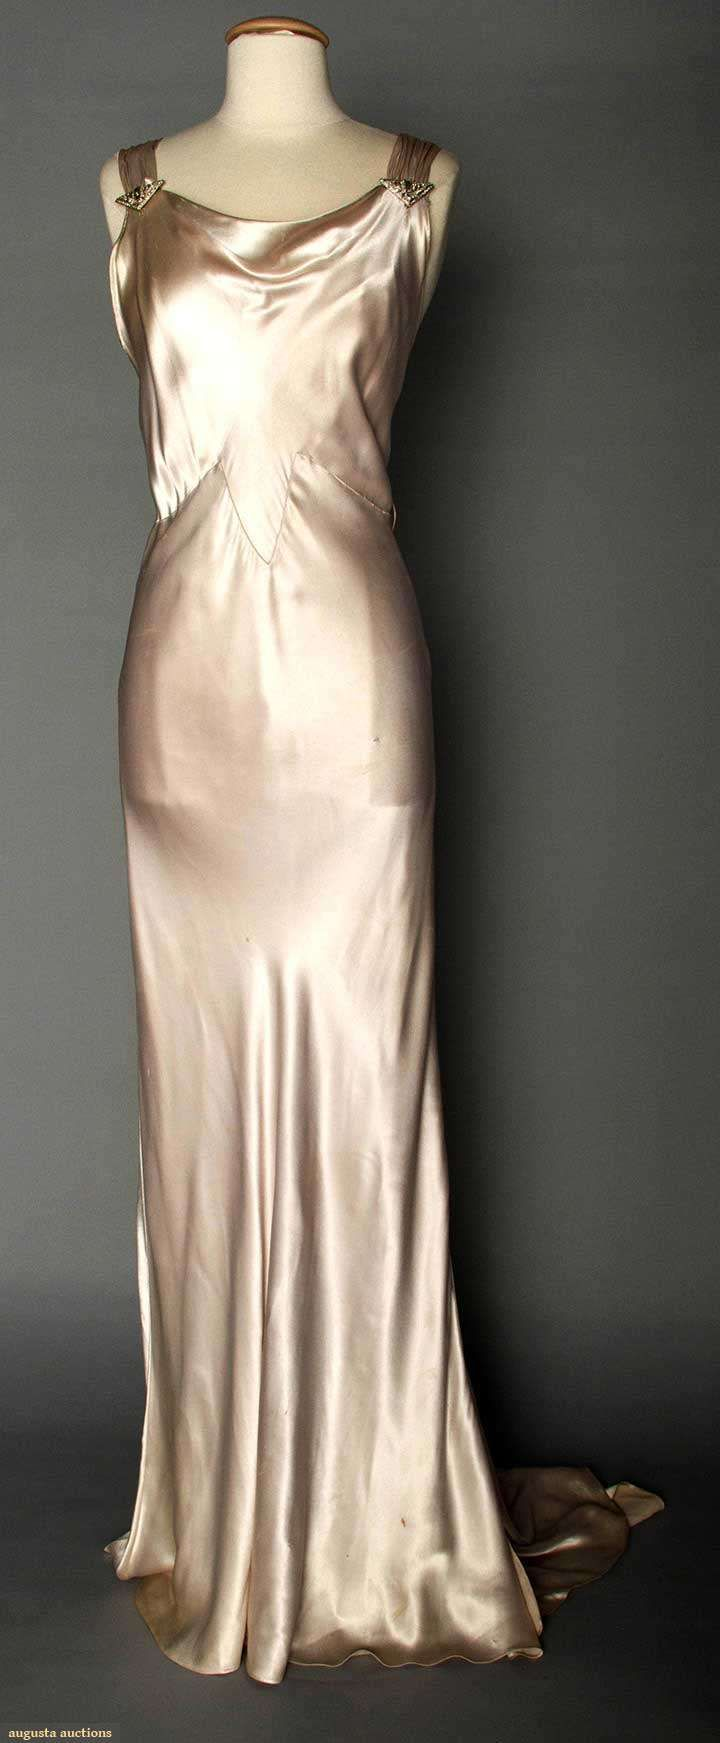 Dress code evening gown - Pale Lavender Silver Silk Charmeuse Bias Cut Sleeveless Cowl Neckline